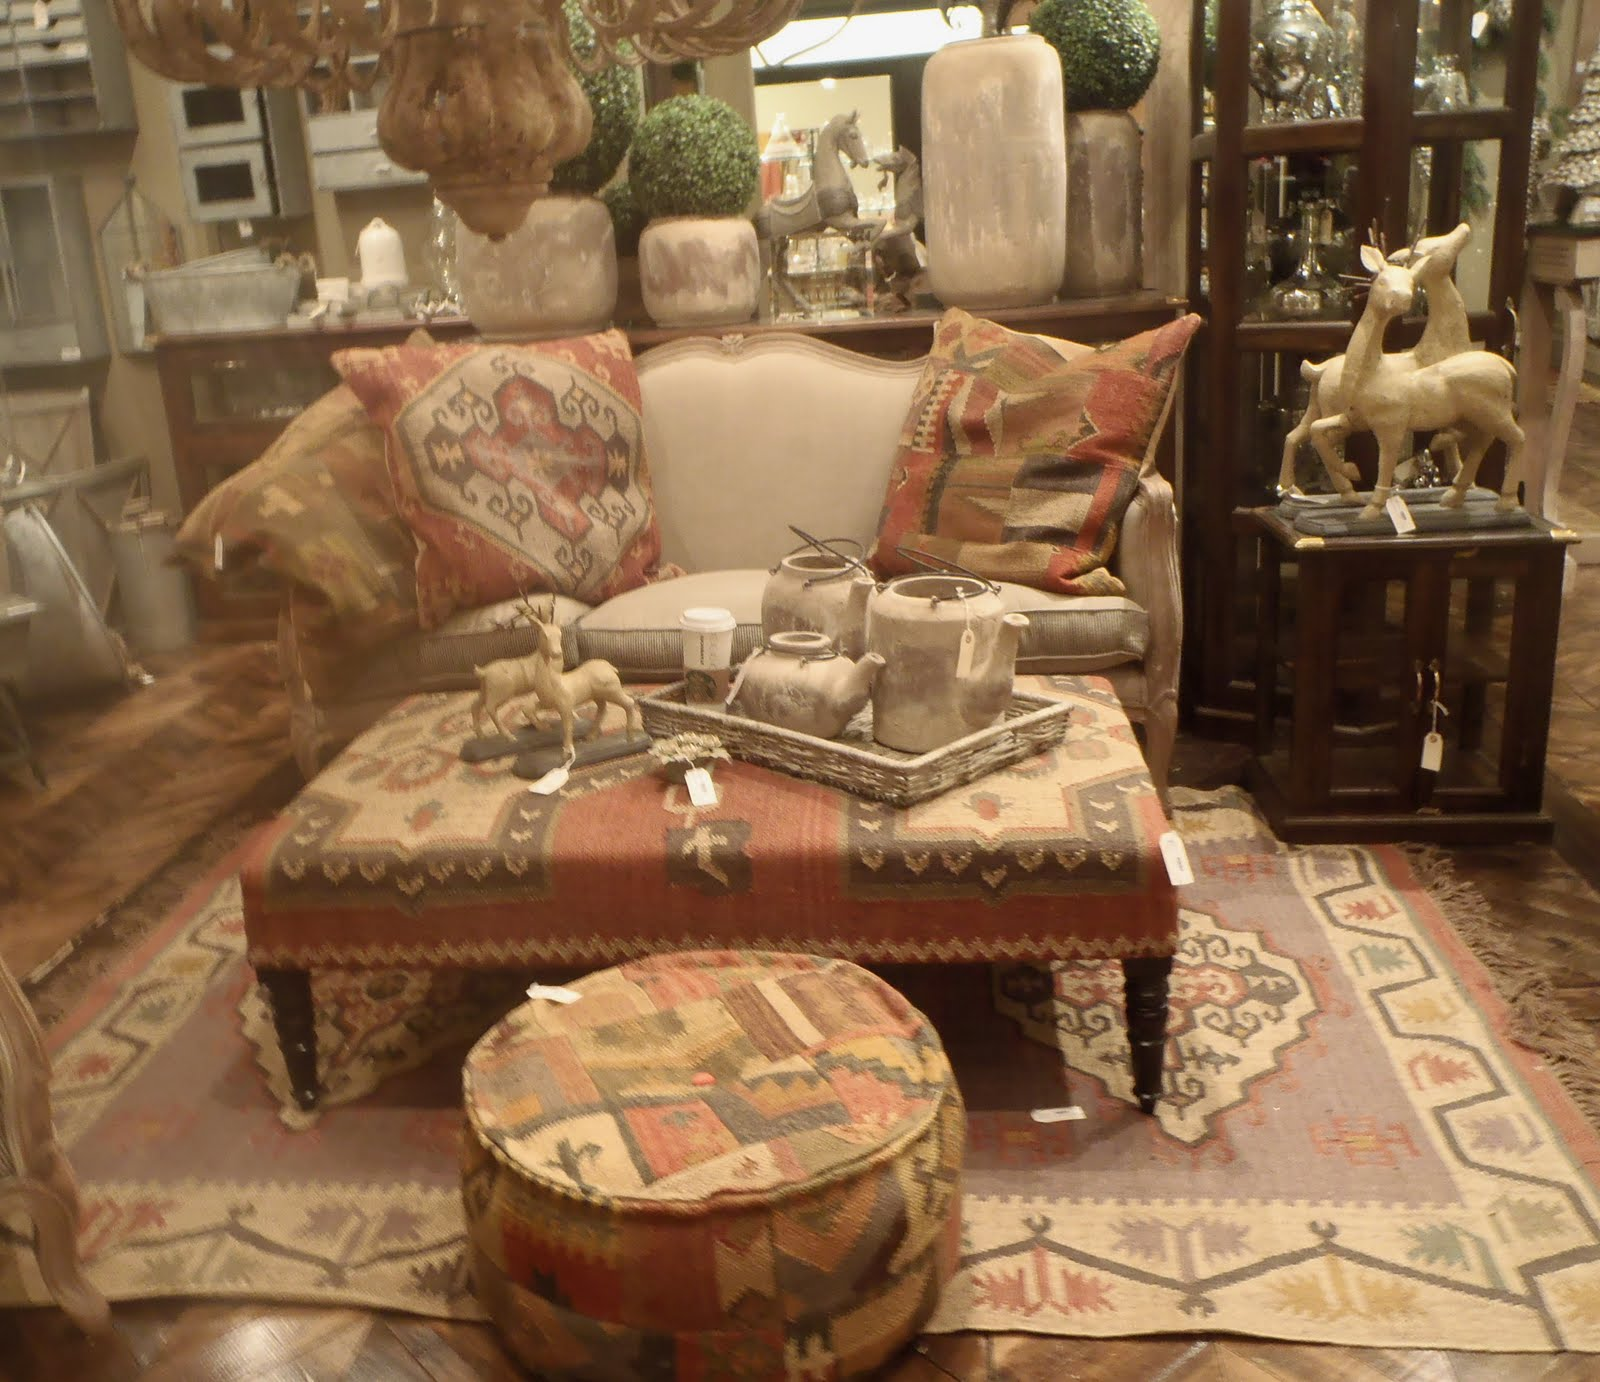 Gentil Teaming Of The Moroccan Kilim With The Linen Sofa. The Warm Earth Tones In  The Different Patterns On The Pillows Ottomans And Rug Do Not Fight With  Each ...